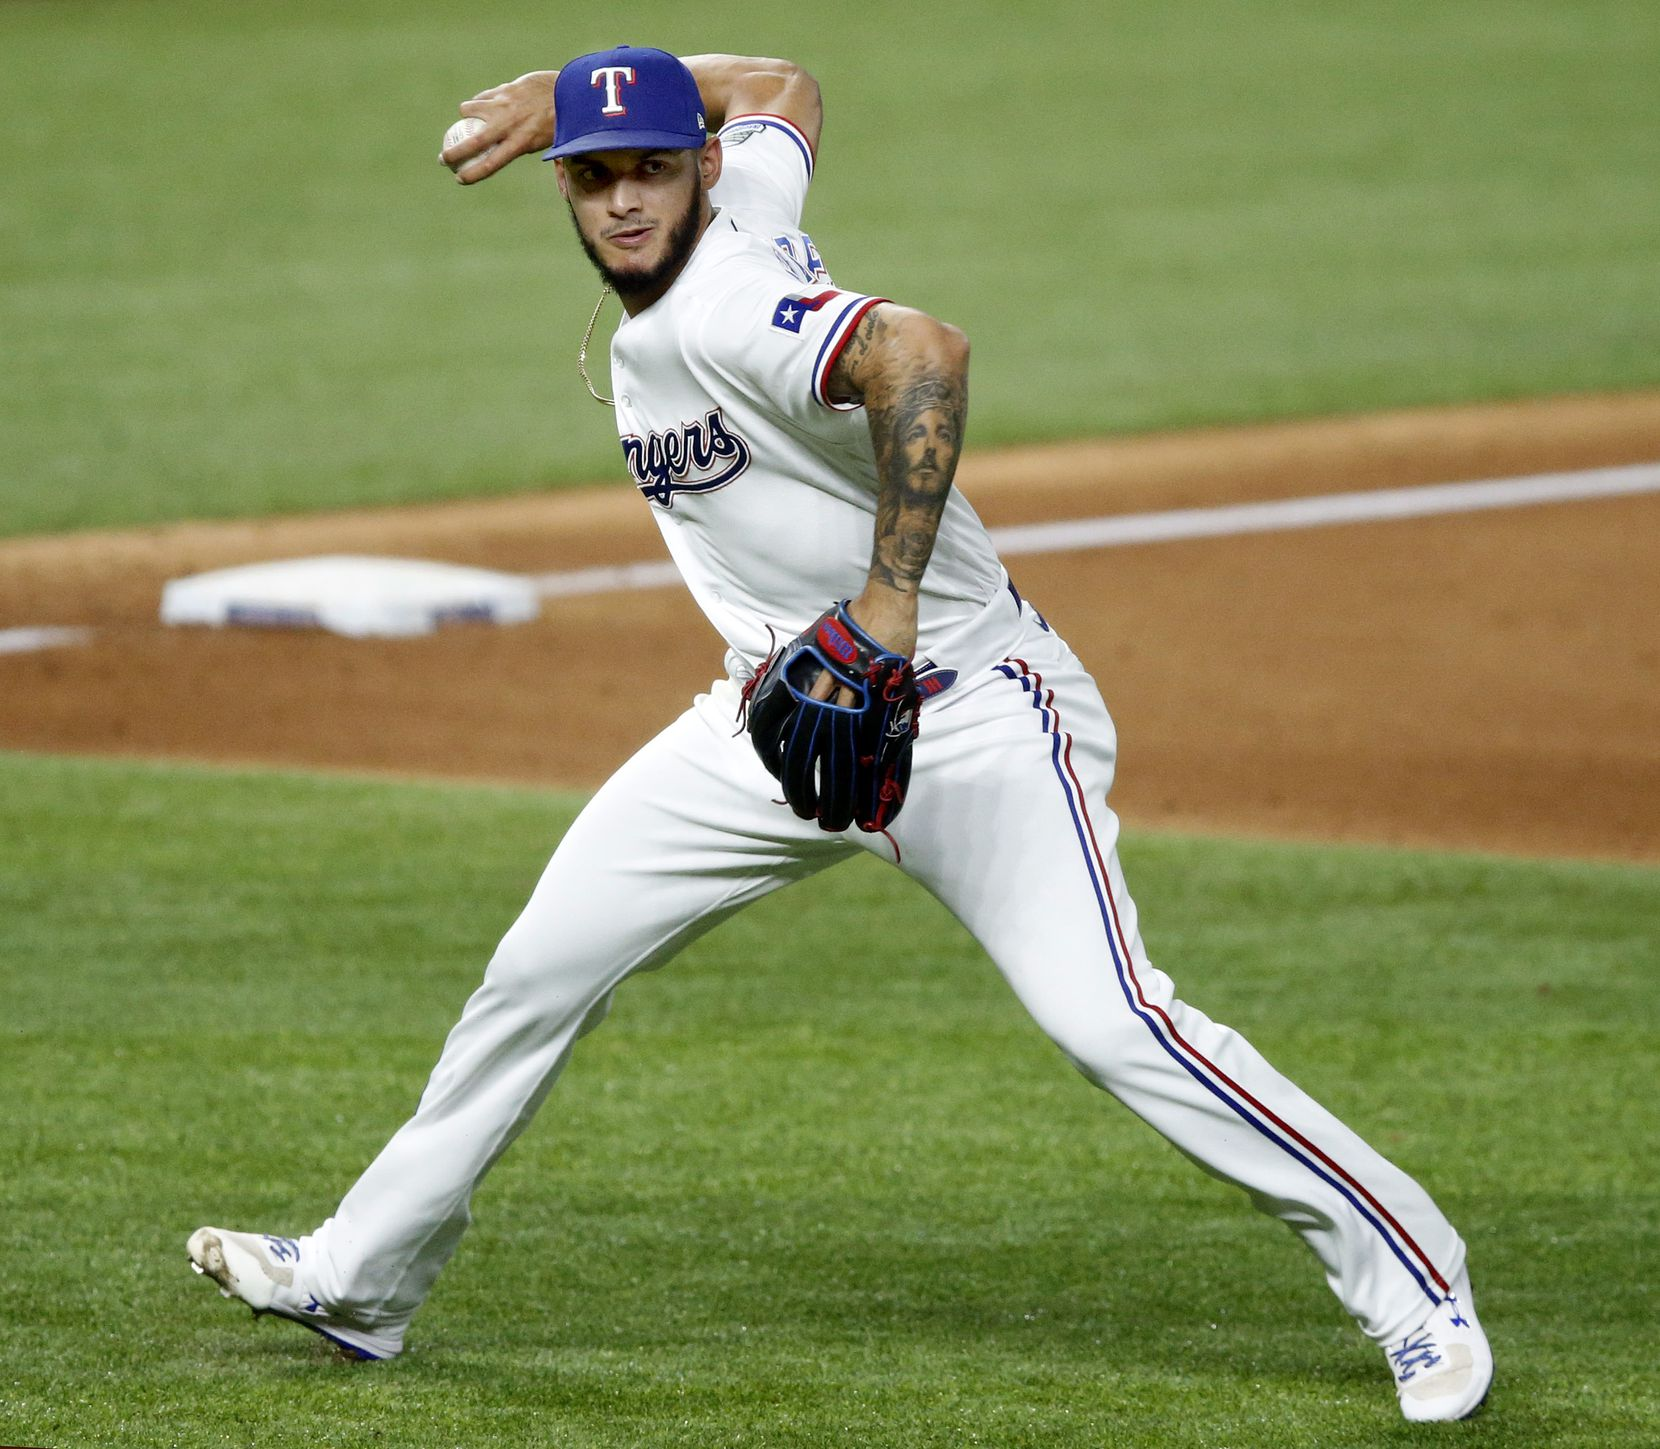 Texas Rangers relief pitcher Jonathan Hernandez (72) wheels and throws to first to get Los Angeles Angels designated hitter Shohei Ohtani (17) on an infield hit during the eighth inning at Globe Life Field in Arlington, Texas, Tuesday, September 8, 2020. (Tom Fox/The Dallas Morning News)